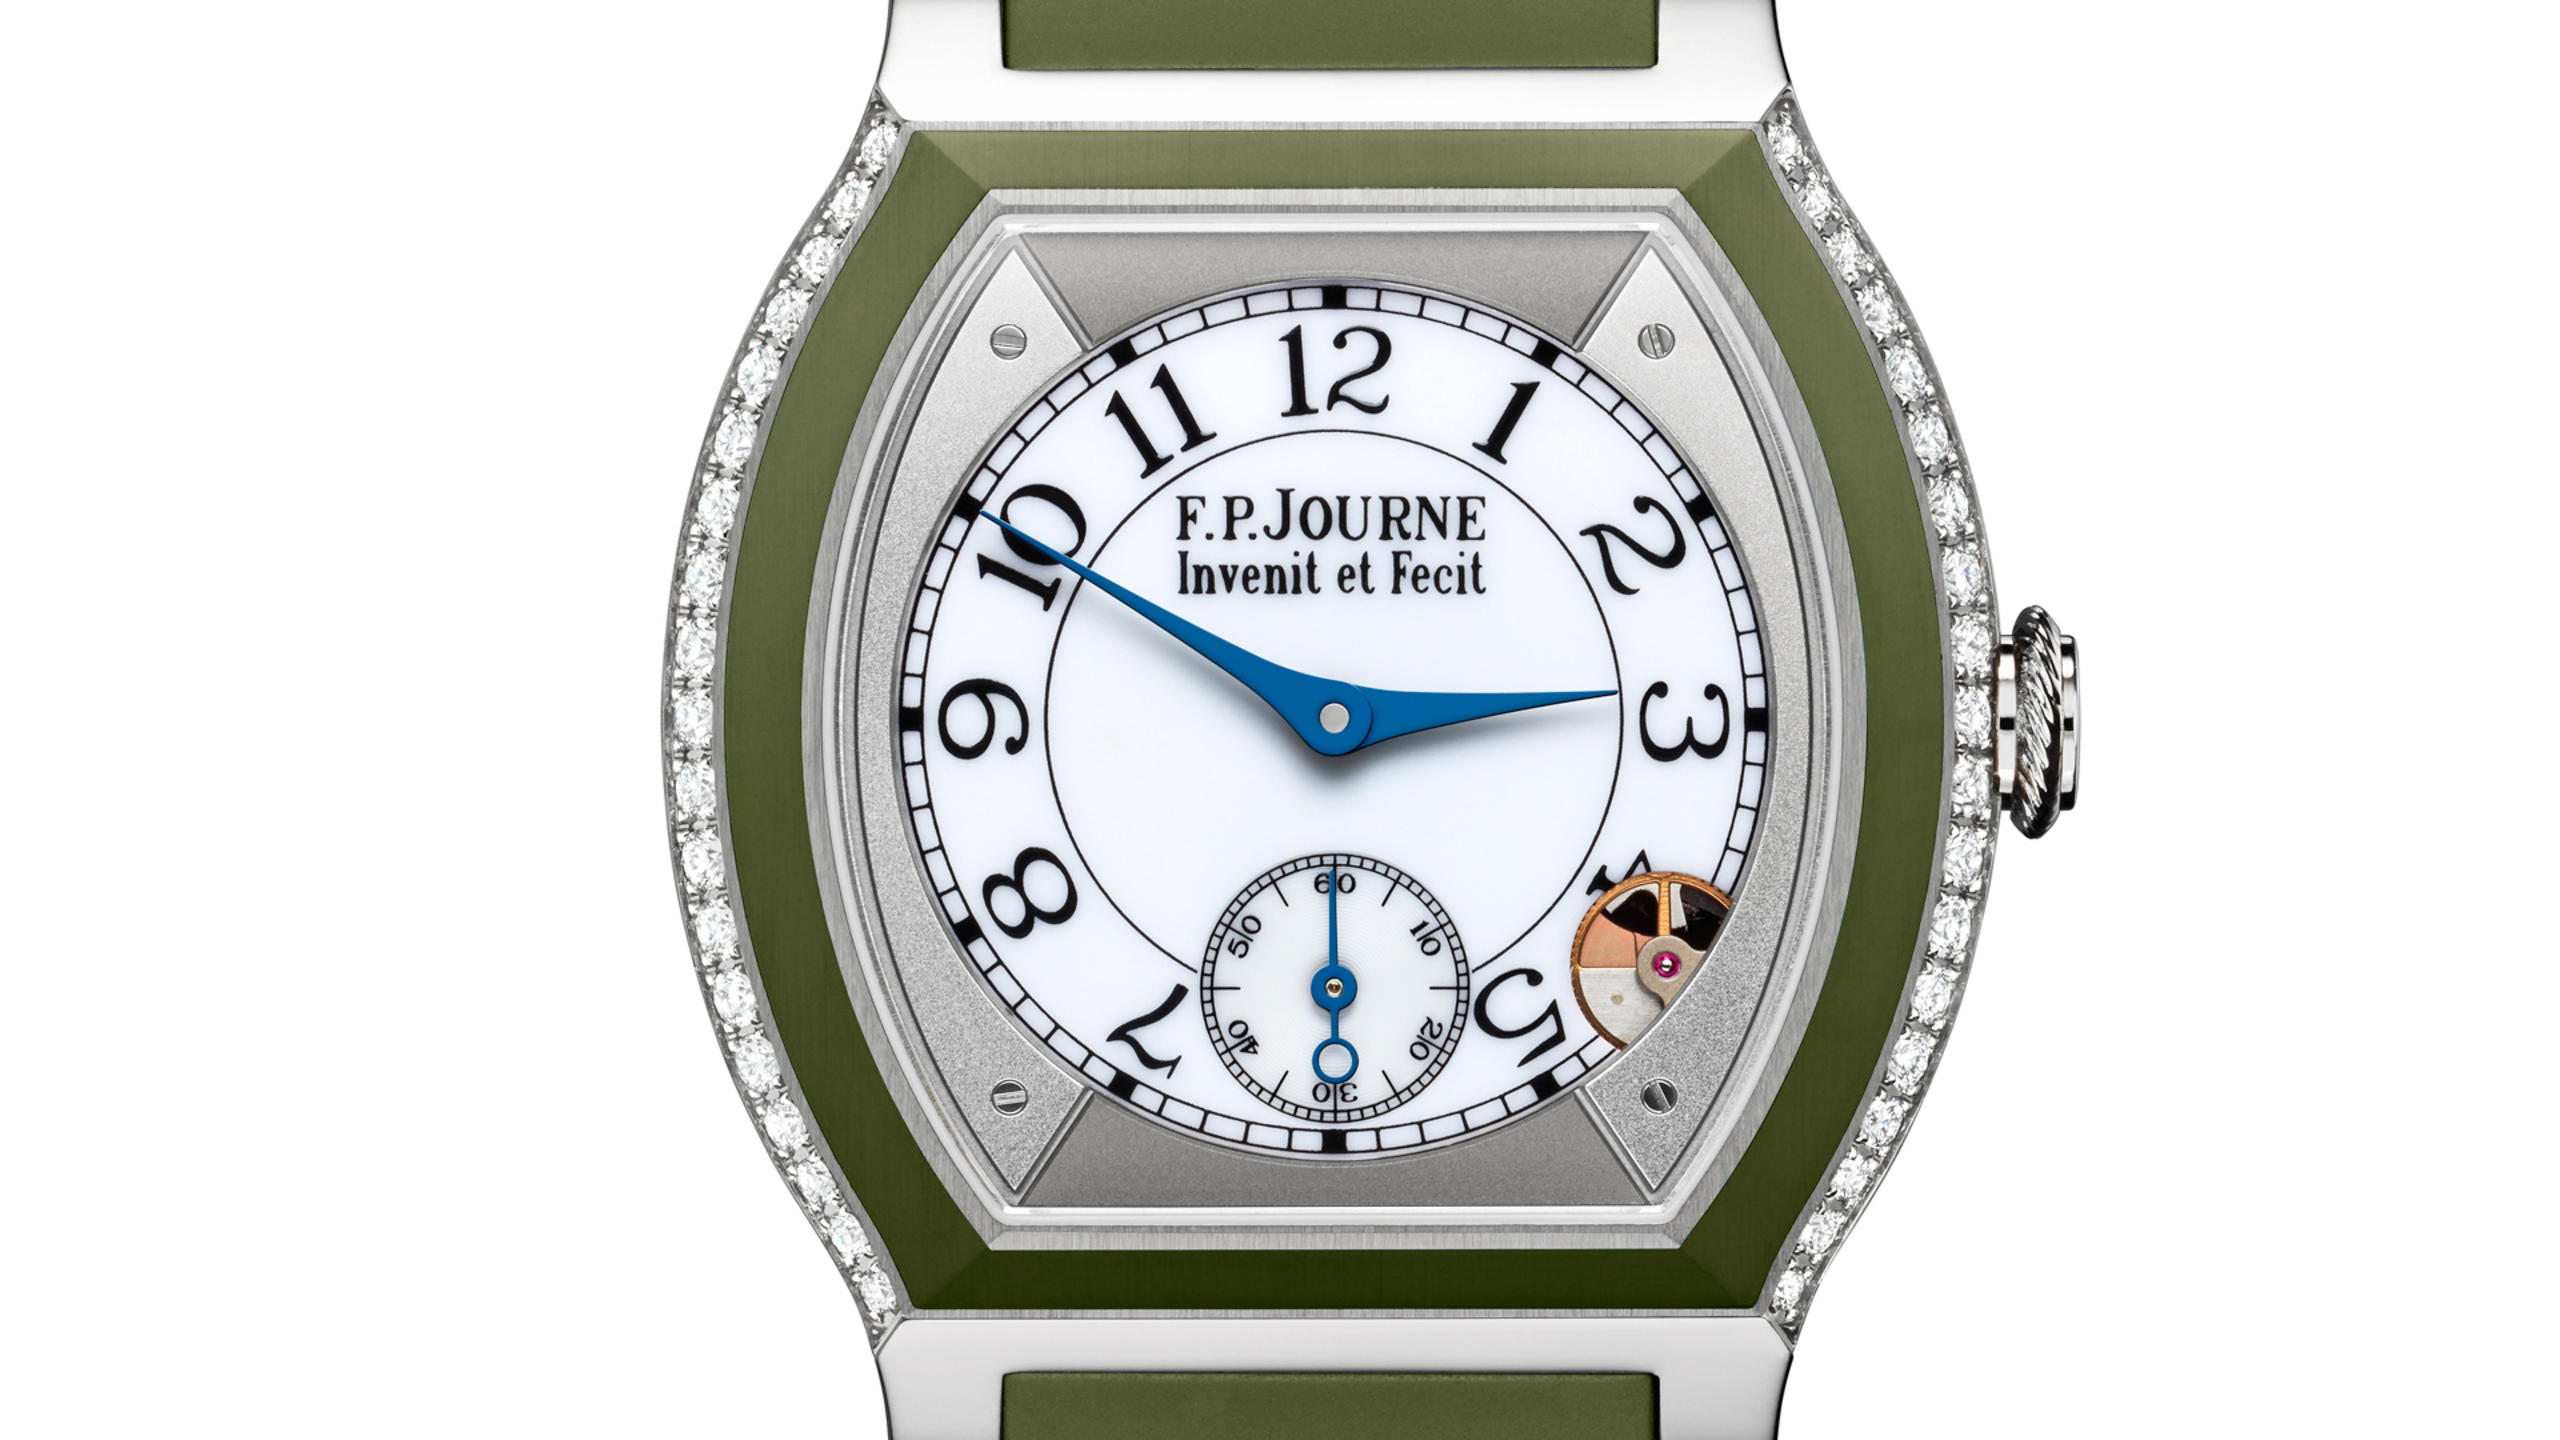 A Dialogue with F.P. Journe — When Passion Trumps Business